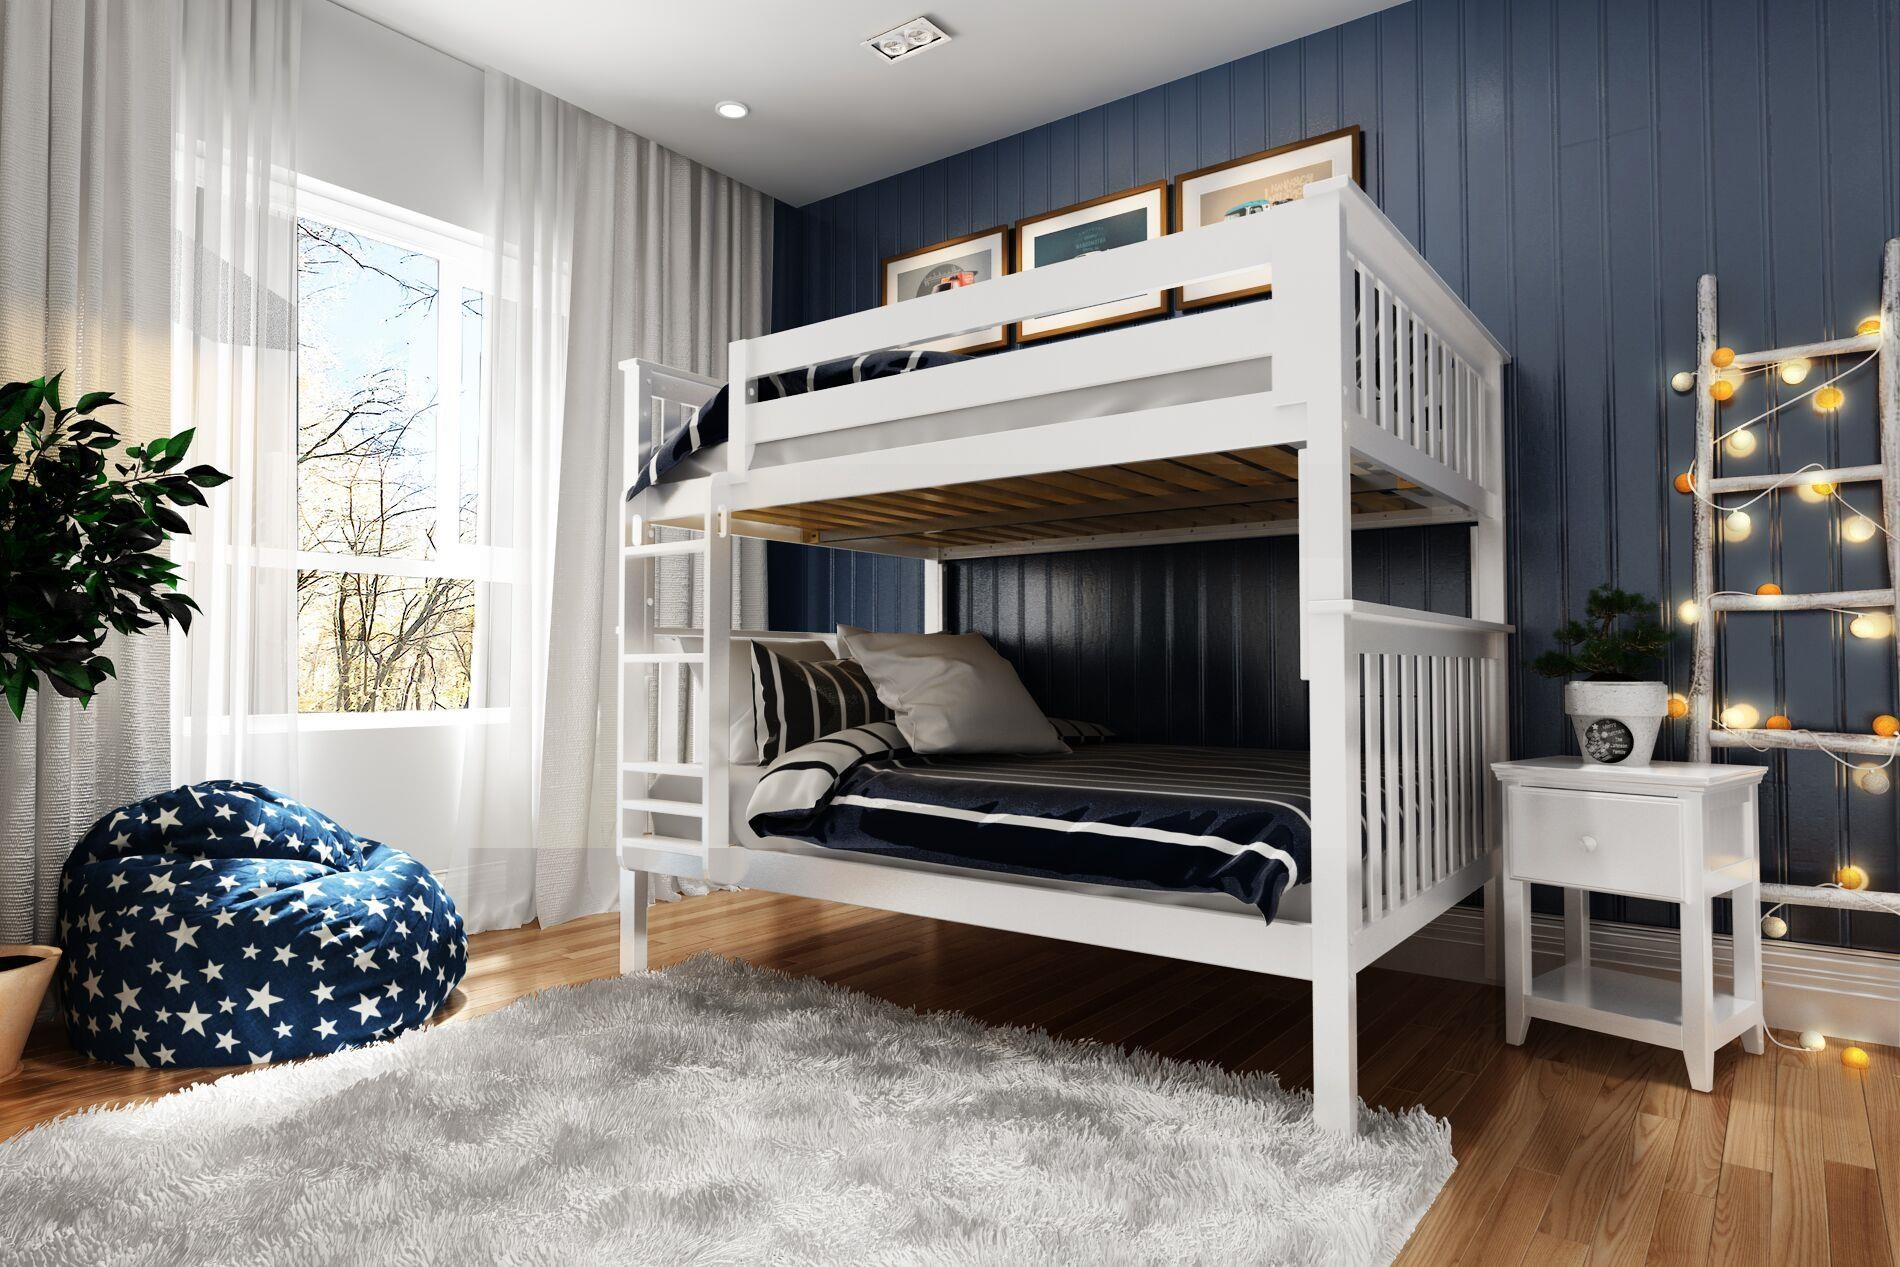 Picture of: Jackpot Kids Bunk Beds Cambridge Full Full Bunk Bed In White W Straight Ladder Belfort Furniture Bunk Beds